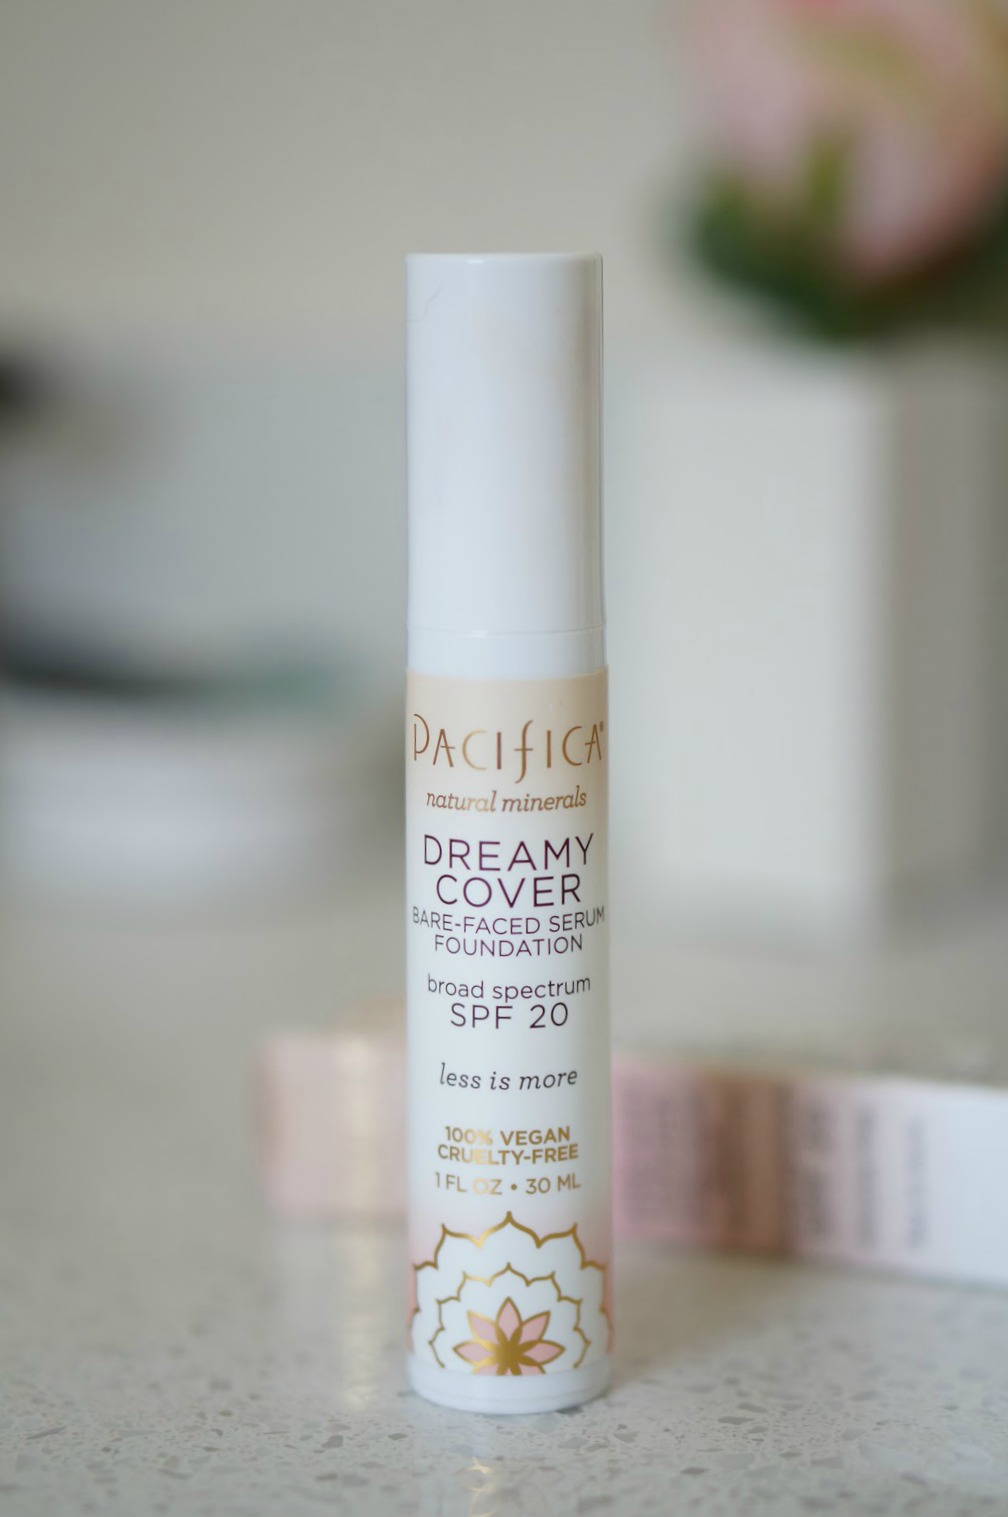 Popular North Carolina style blogger Rebecca Lately shares her thoughts on the Pacifica Dreamy Cover Bare- Faced Serum Foundation. Click here to read her latest #foundationfriday!